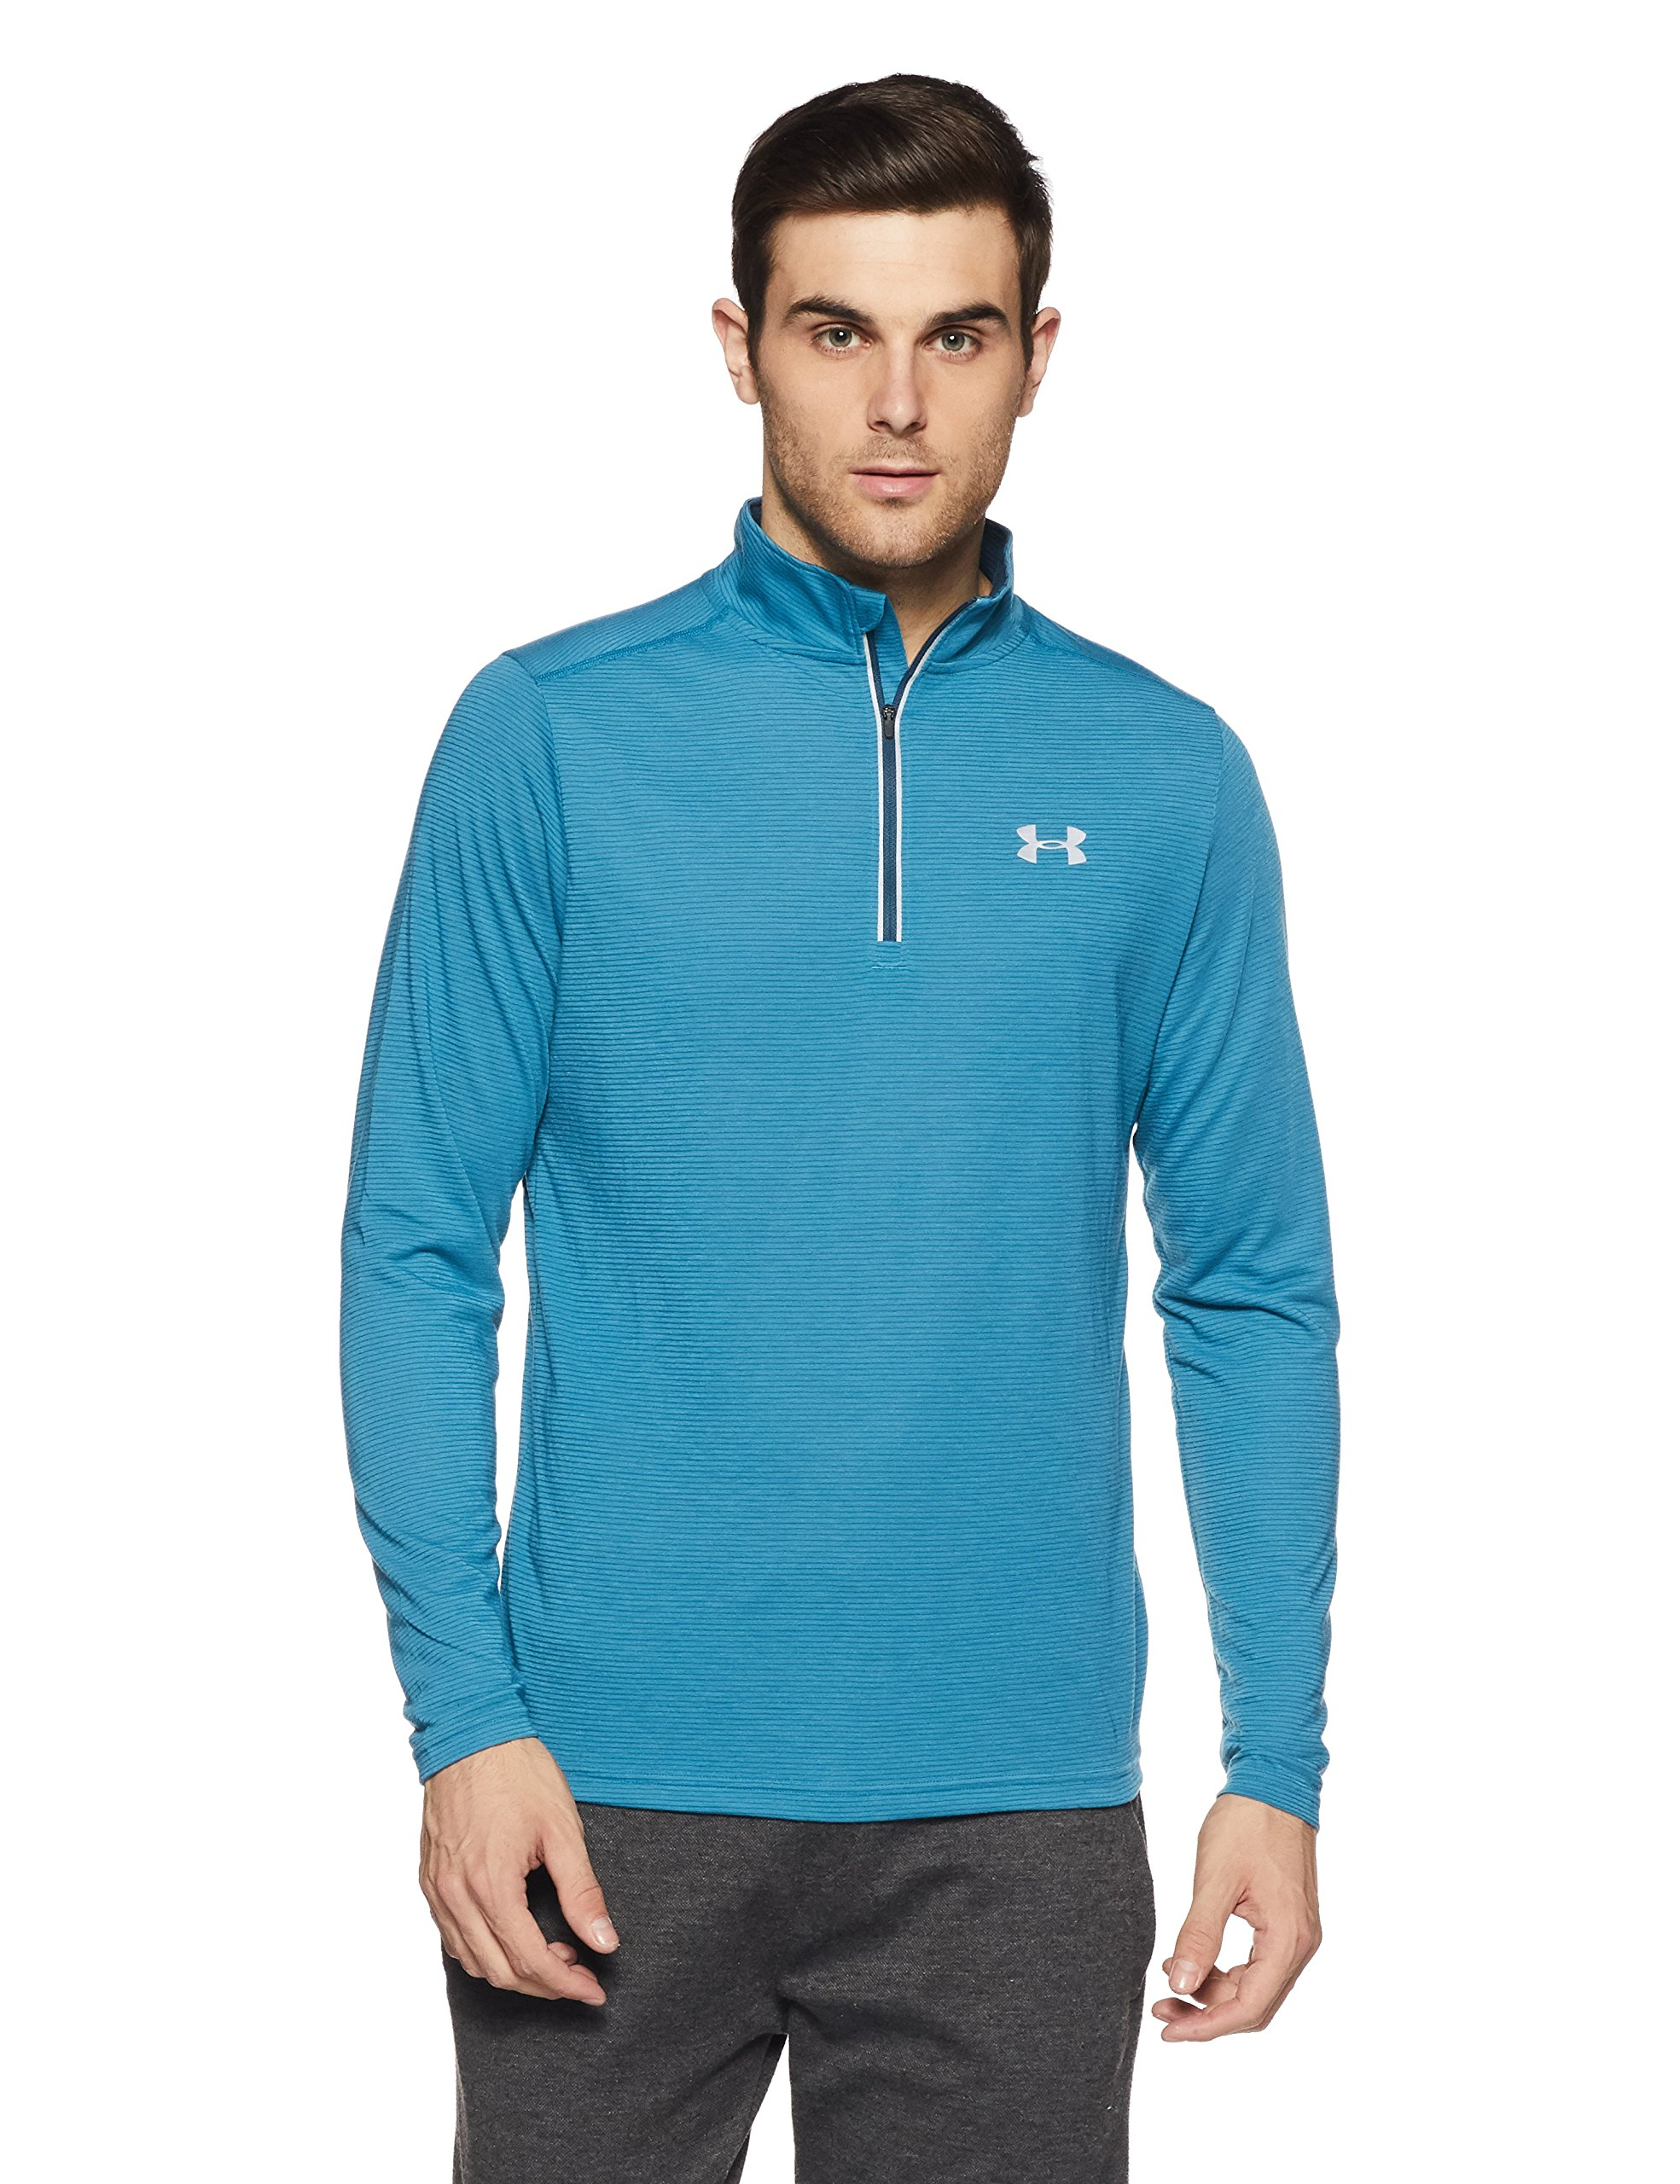 Under Armour Men's Streaker Run 1/4 Zip, Bayou Blue/Reflective, Small by Under Armour (Image #1)